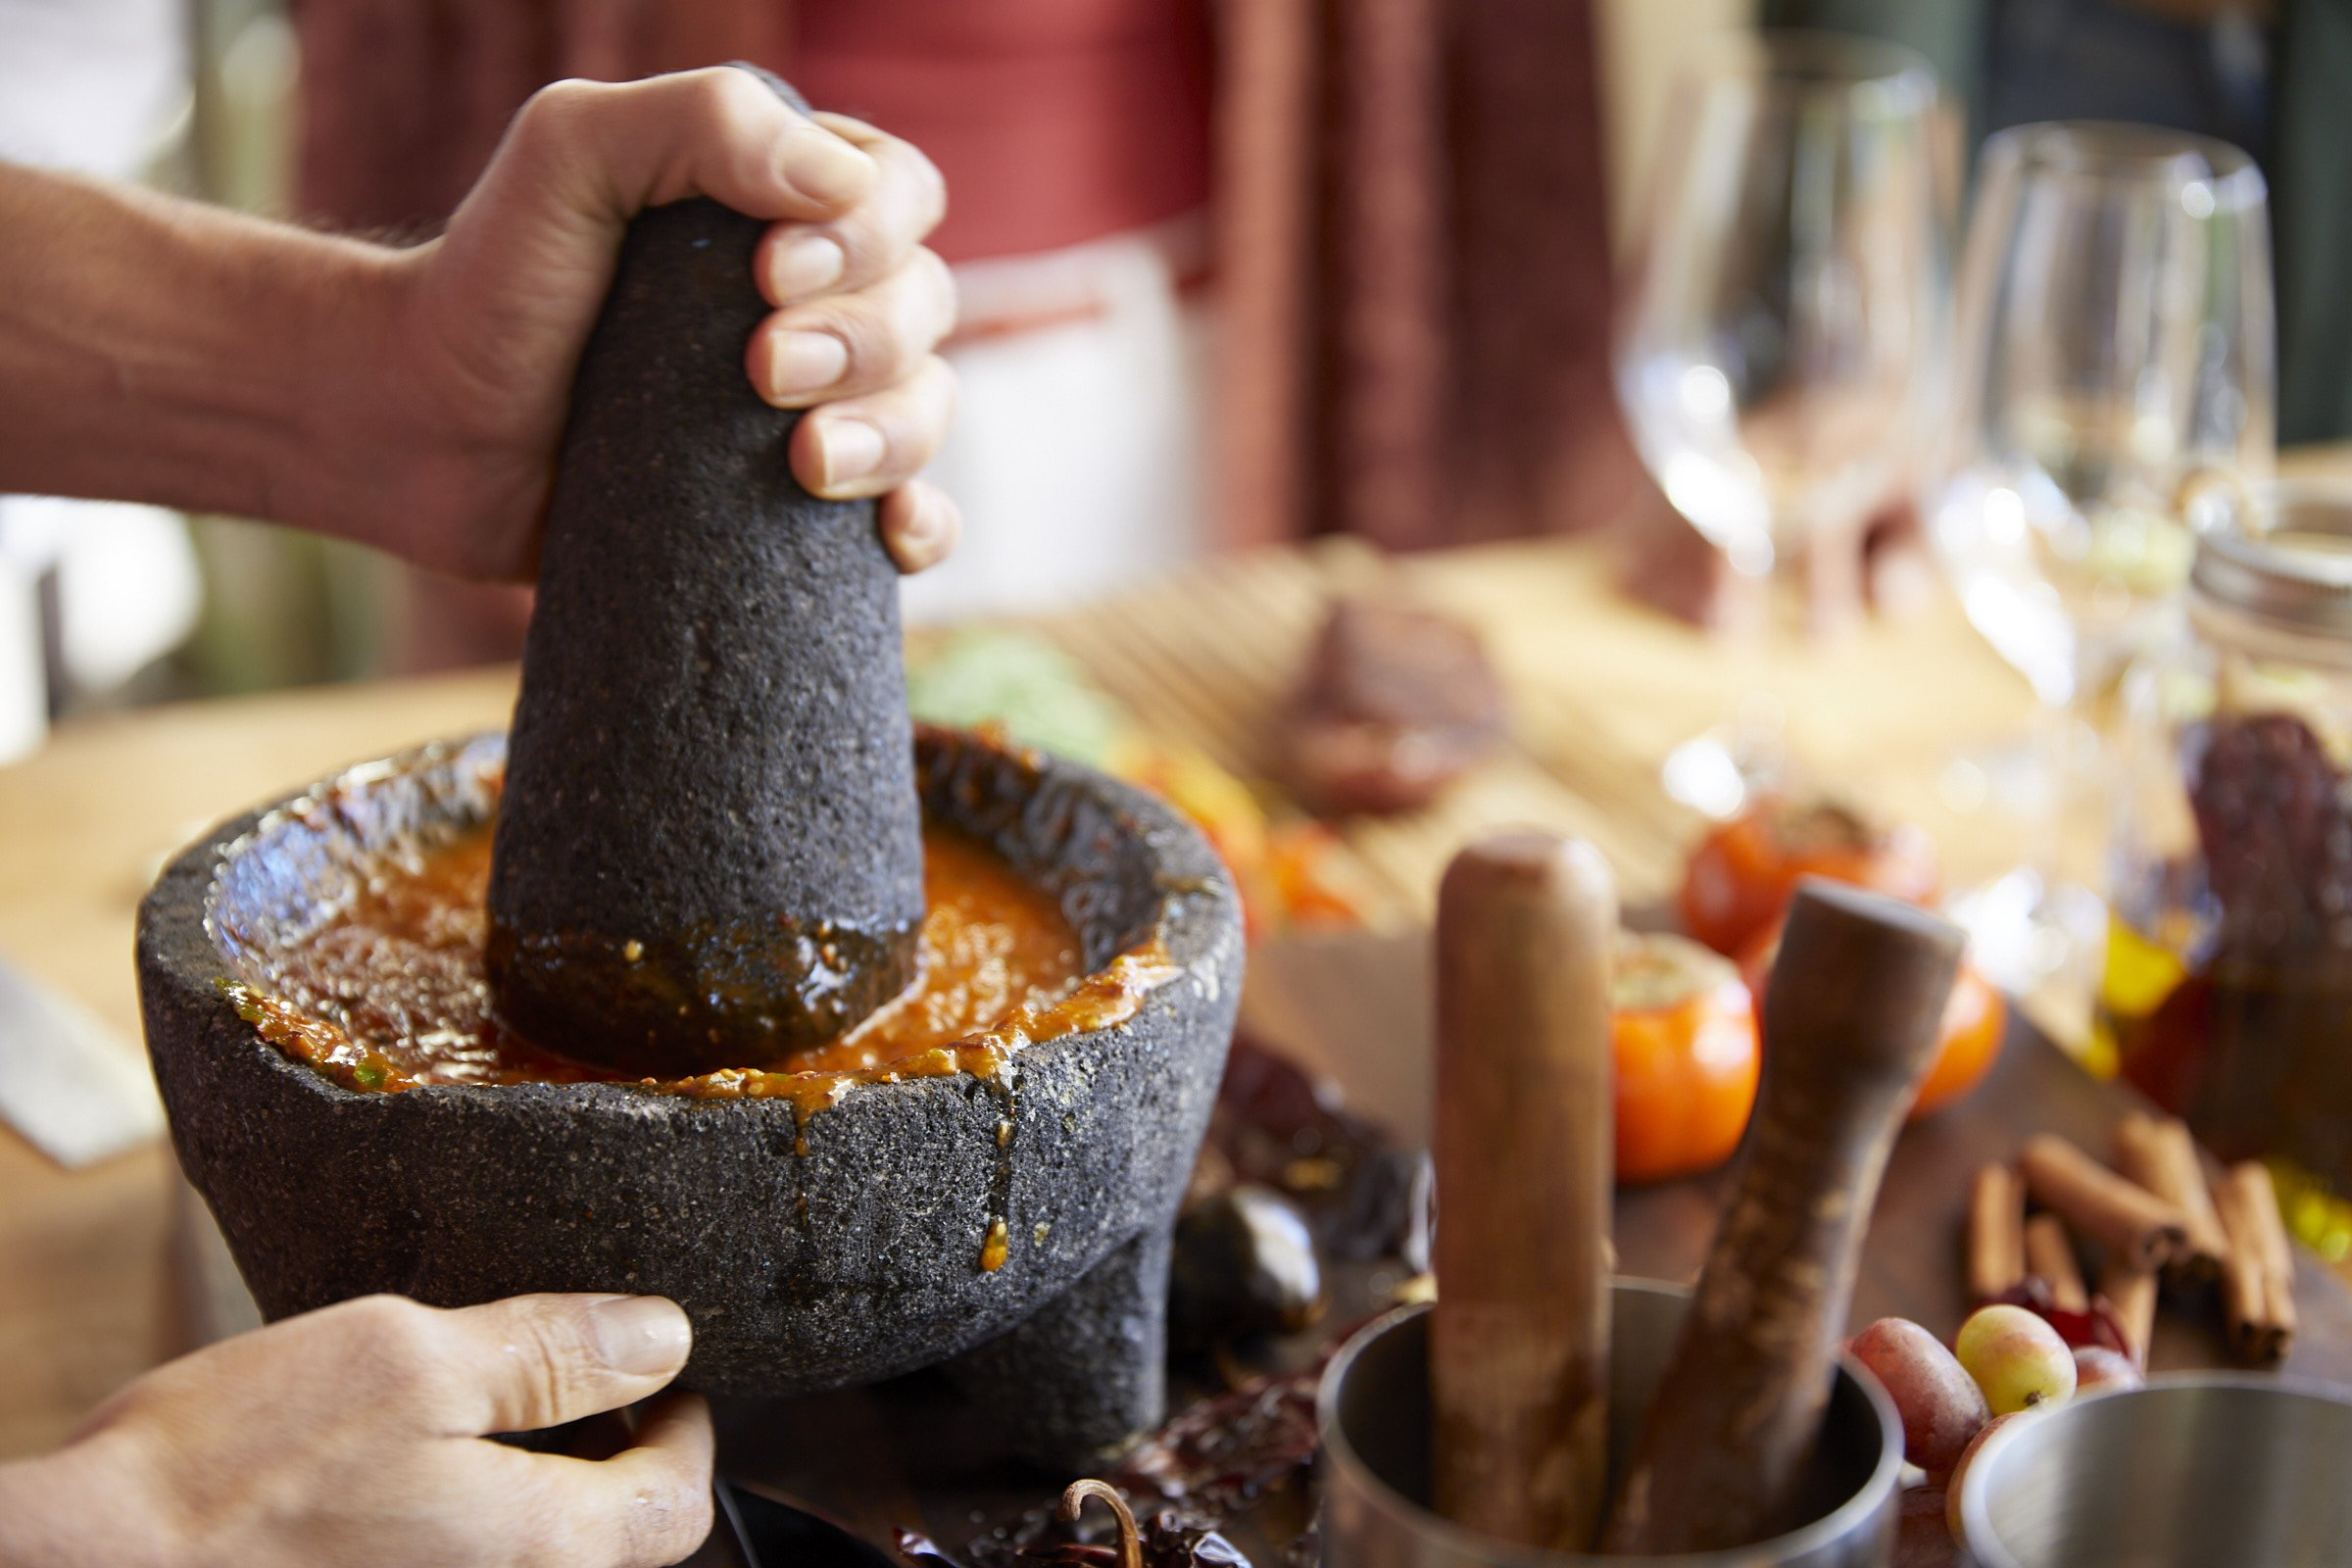 making salsa with a mortal and pestle